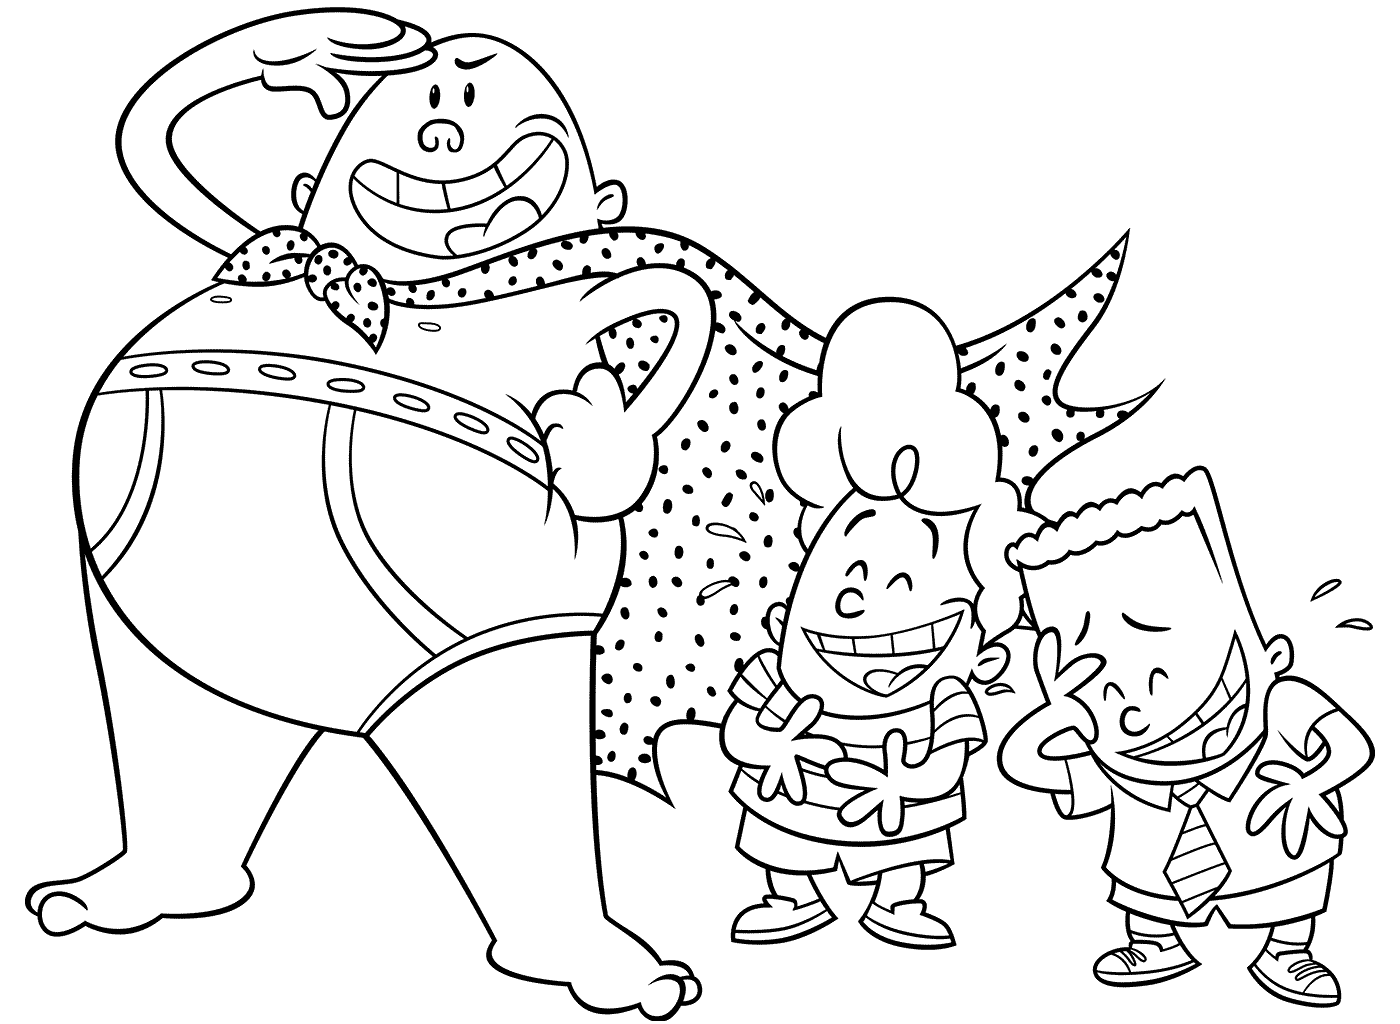 1400x1024 Captain Underpants New Colouring Pages